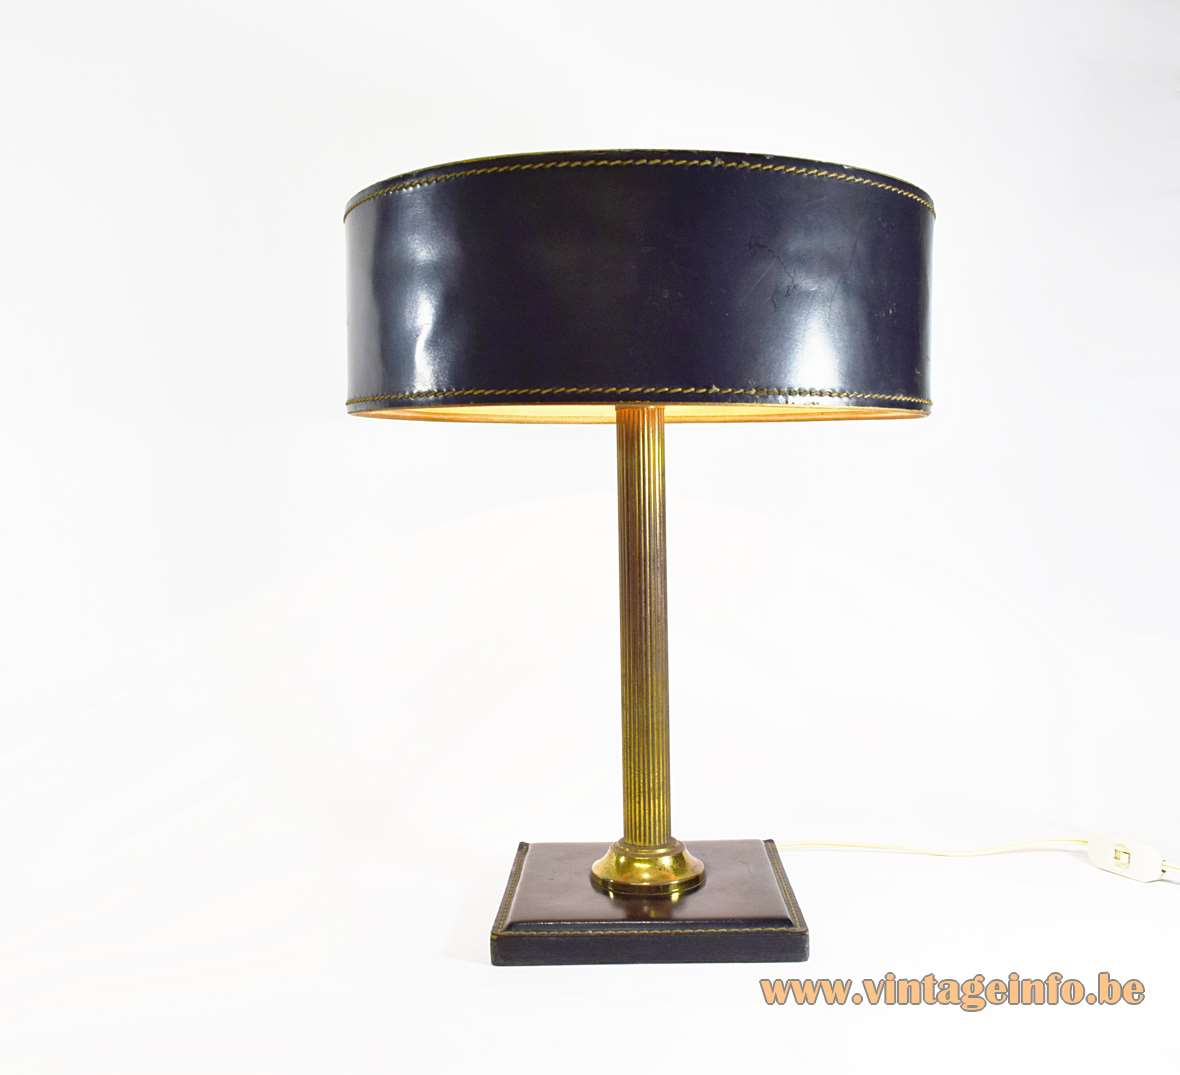 Black leather square base desk lamp brass ribbed rod black leather clad lampshade Jacques Adnet 1970s